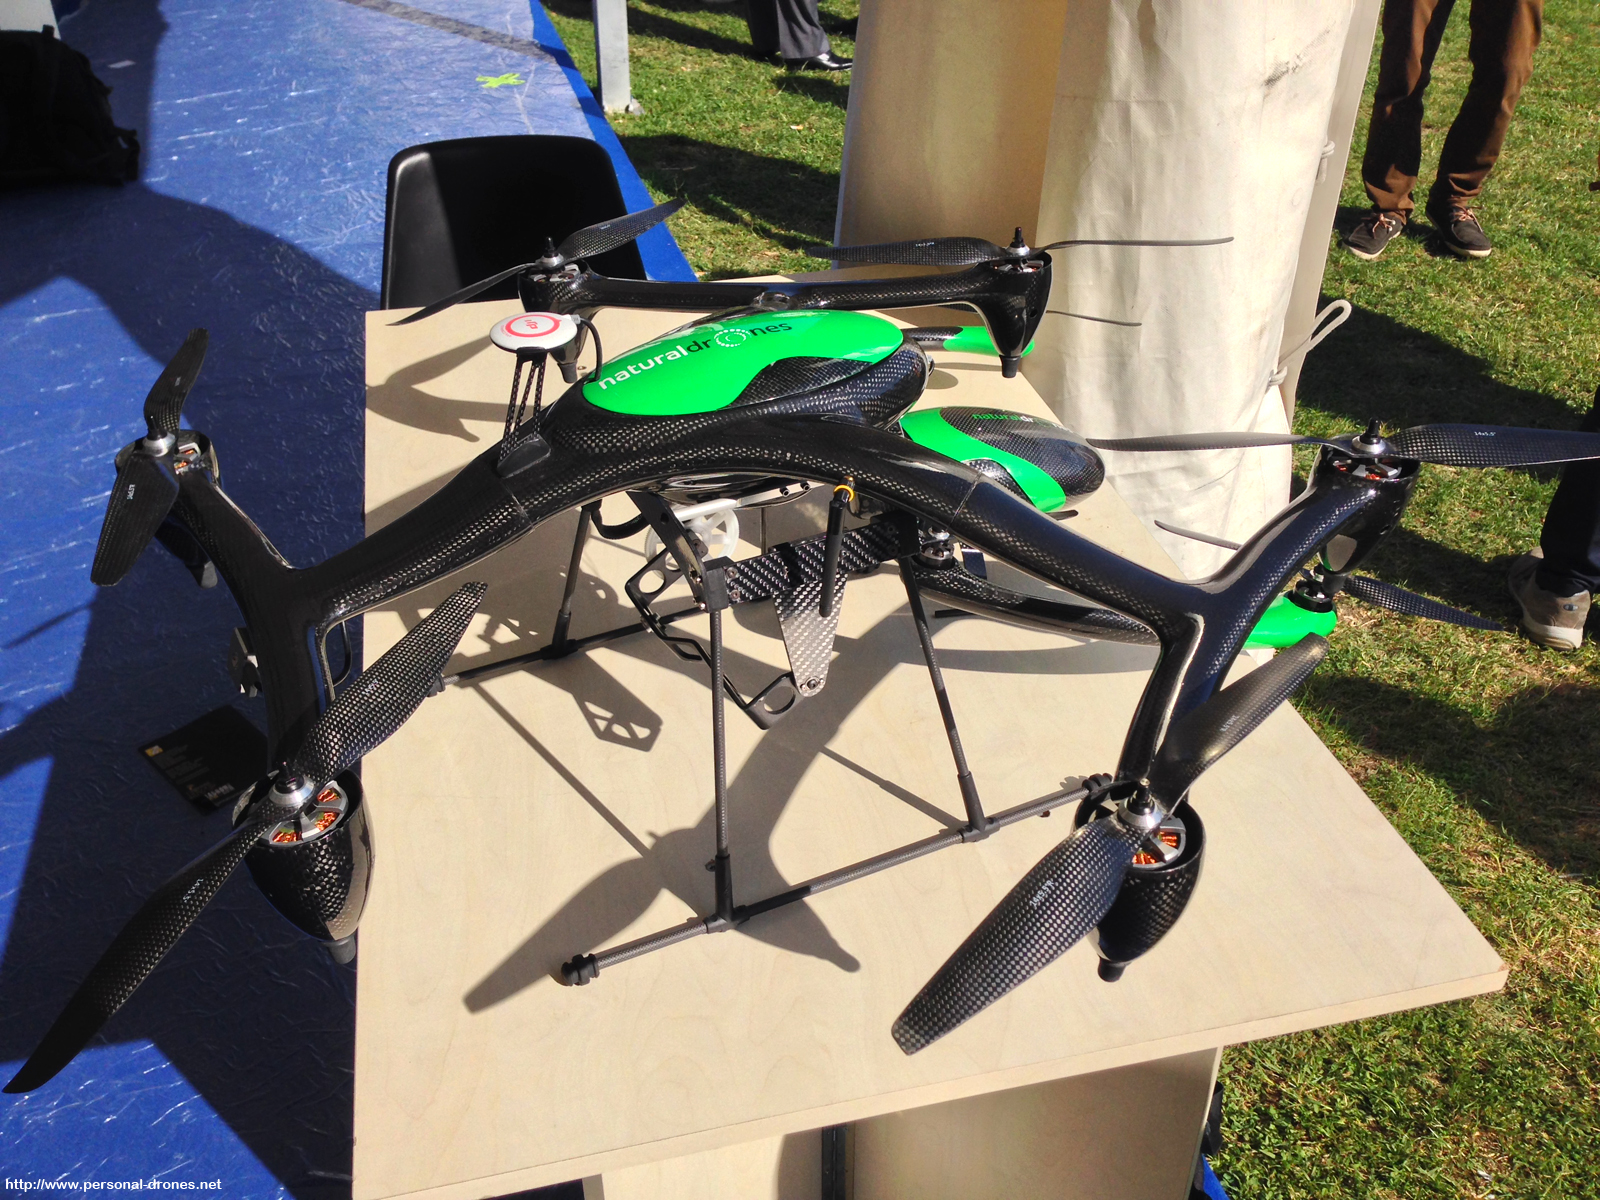 The Natural Drones hexacopter. Mind that below the hexa, is the quad, this might be confusing in the picture